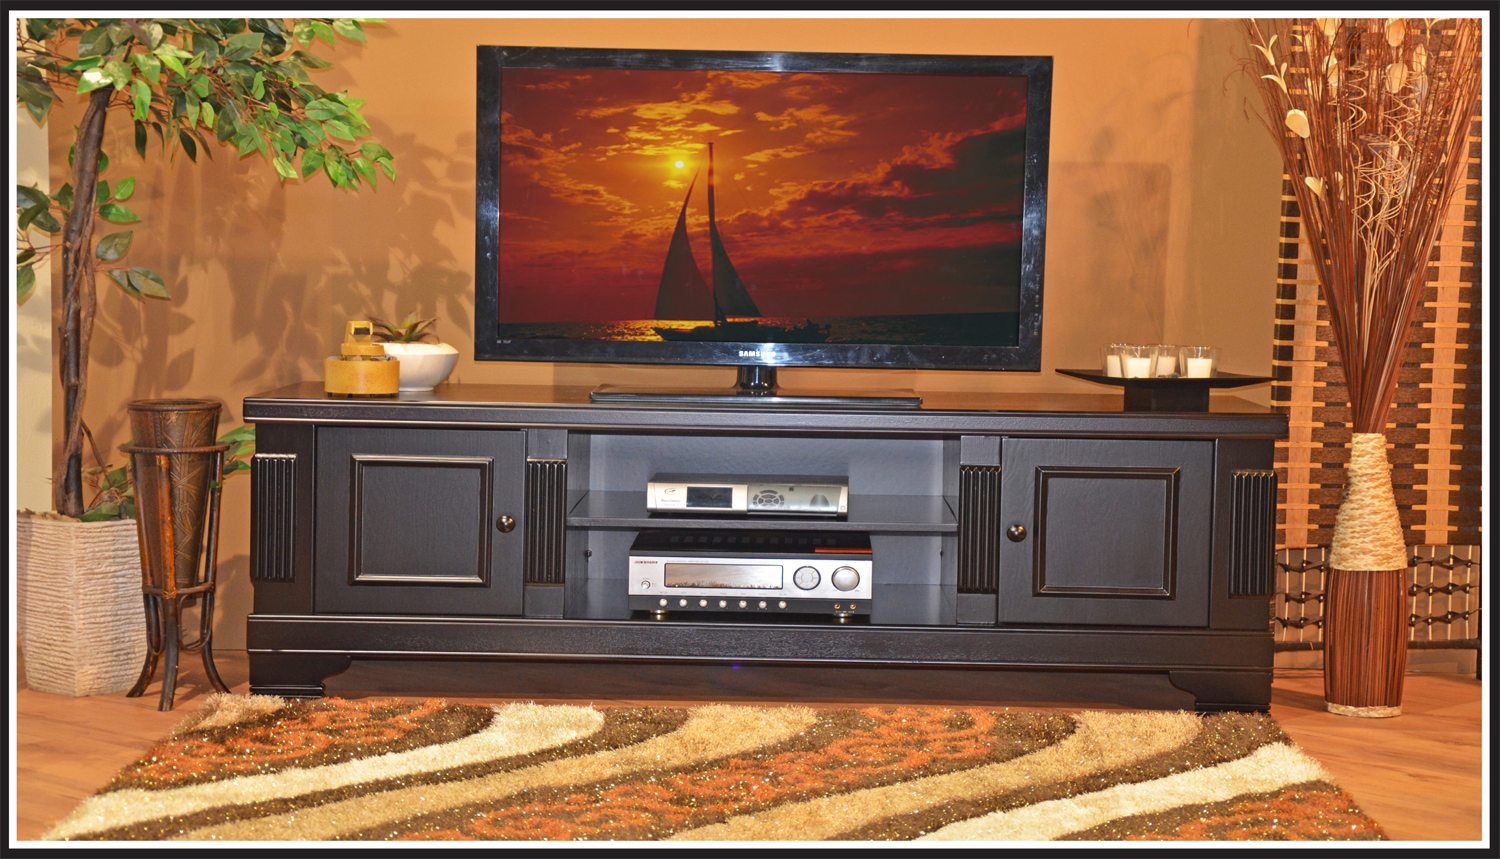 Tiffany Plasma TV Stand Plasma Stand for sale TV Stand  : Tiffany Plasma Tv stand from www.discountdecor.co.za size 1500 x 859 jpeg 844kB